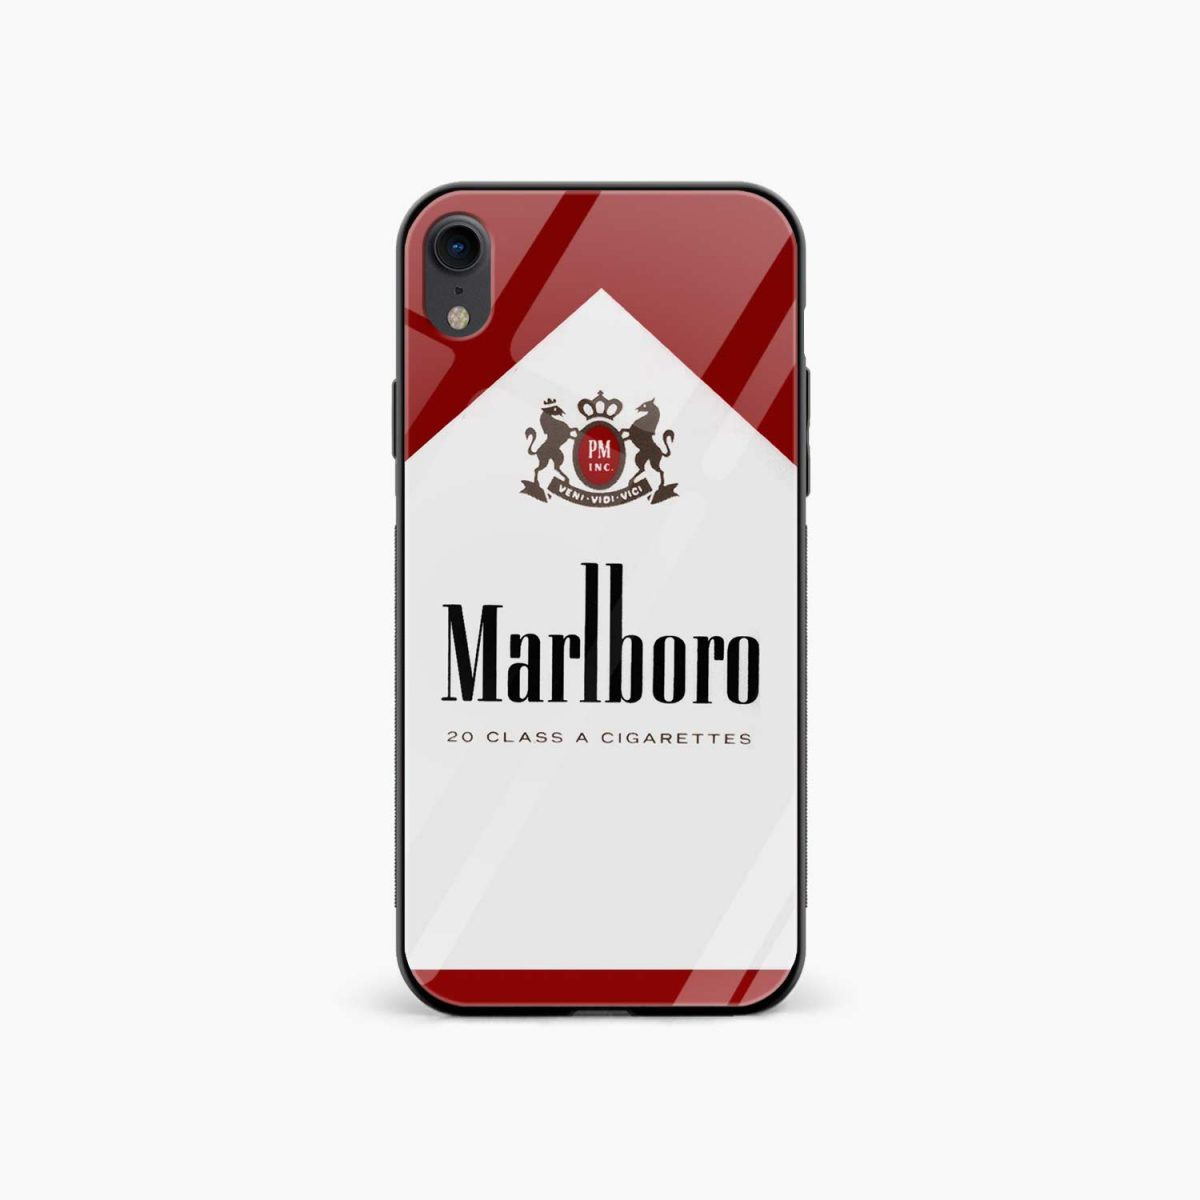 marlboro cigarette box apple iphone xr back cover front view